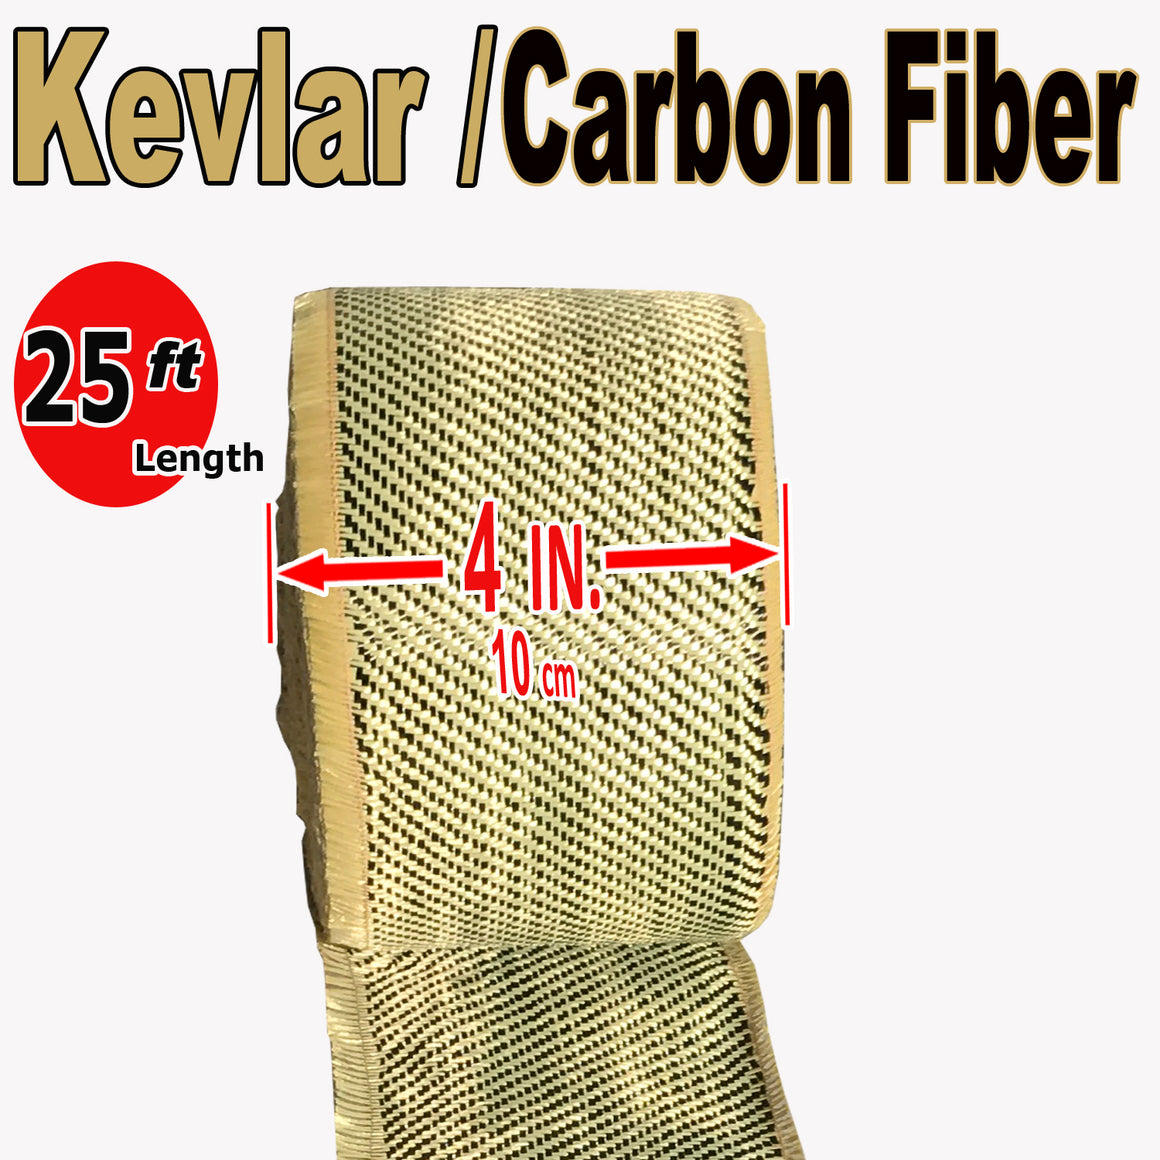 KEVLAR ARAMID  Fabric - 4 in x 25 ft - Ylw/Blk Twill  - 240g/m2 - 3K TOW